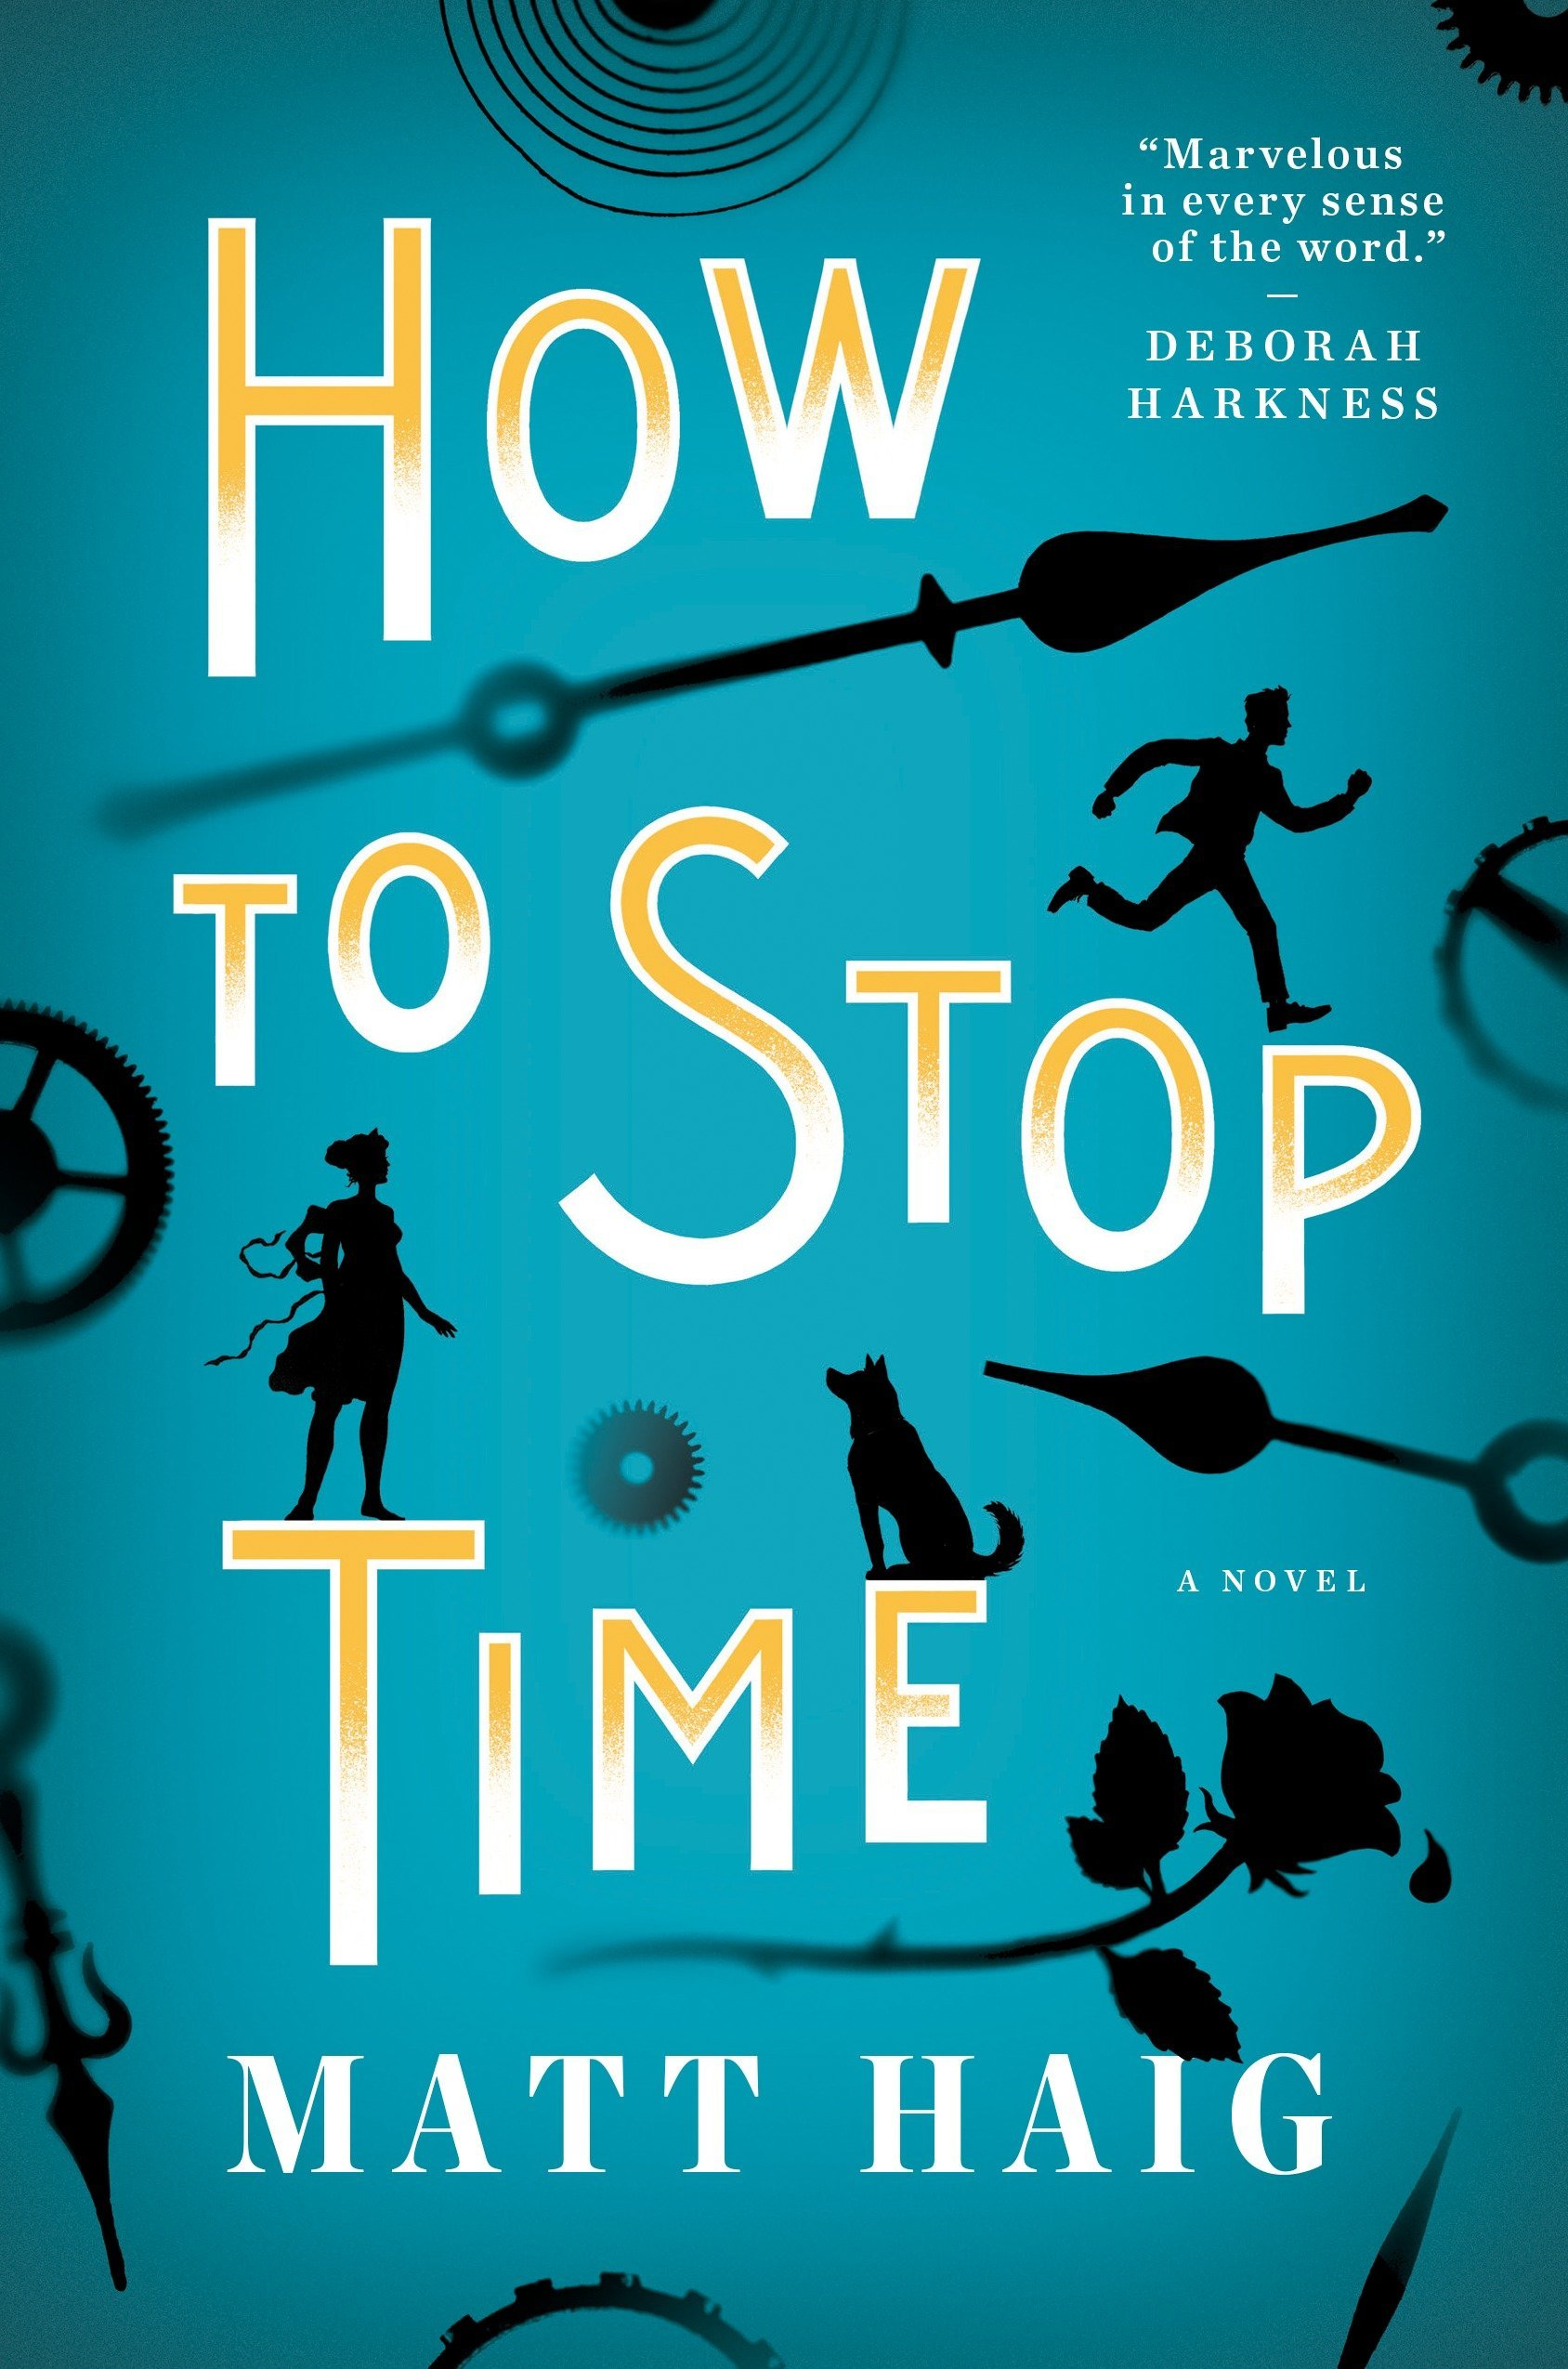 Amazon.com: How to Stop Time (9780525522874): Haig, Matt: Books